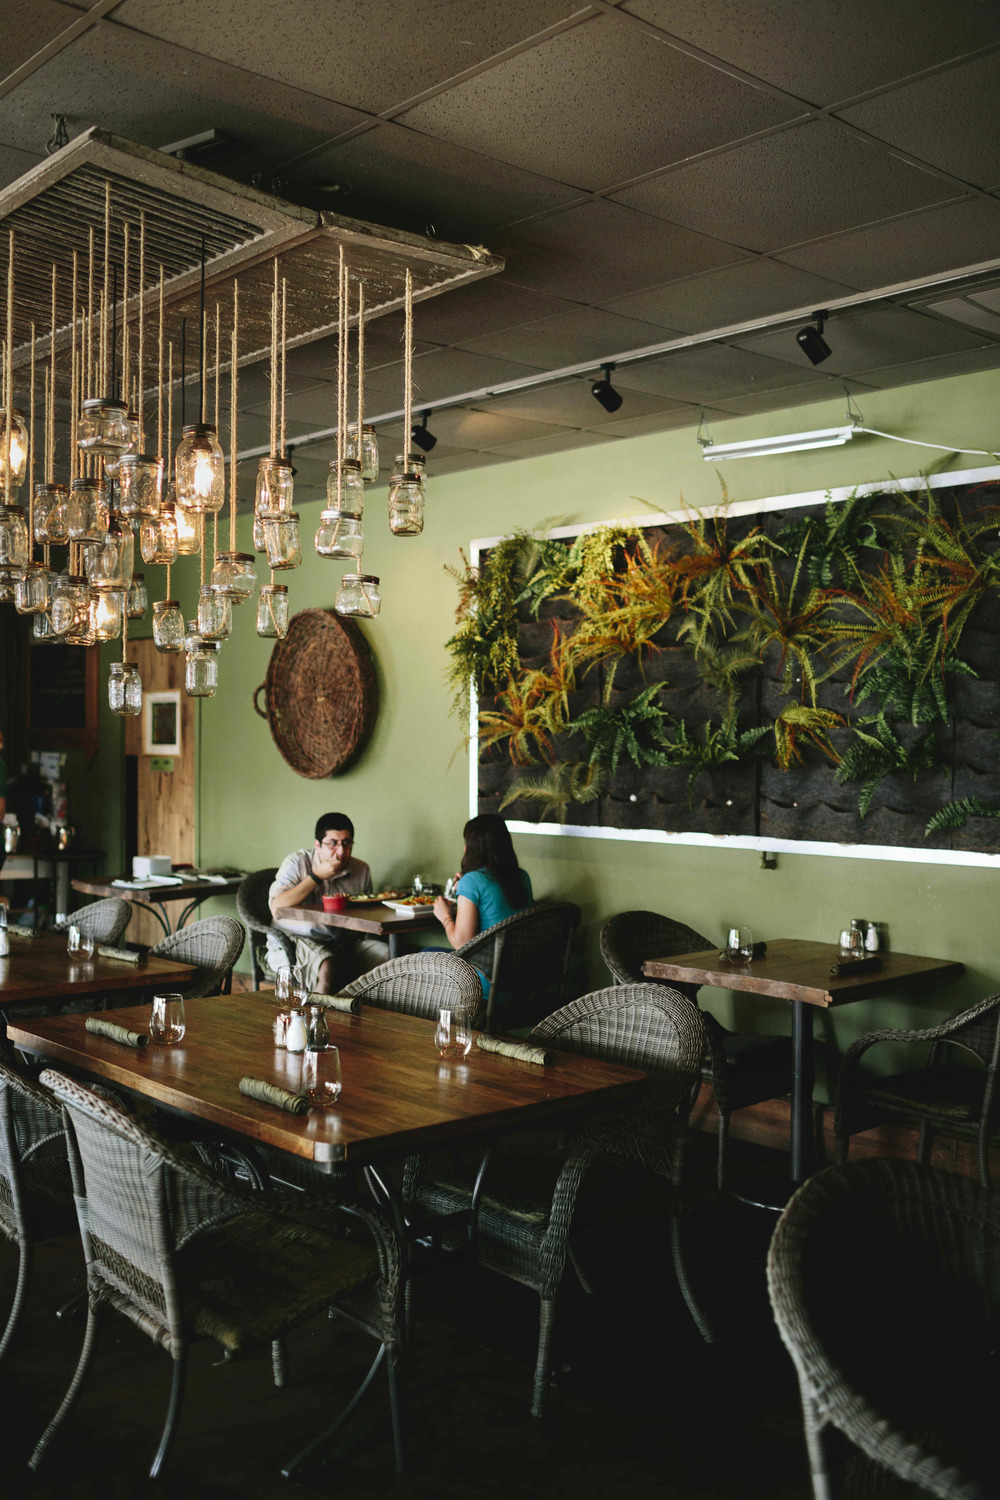 AshevilleFolk Summer City Guide: Charlotte NC with Megan Gielow. Fern. Fresh vegetarian goodness. Fabulous lunch/dinner/brunch. We bike over on Sundays and share the Cinnamon Rolls and Patatas Bravas.